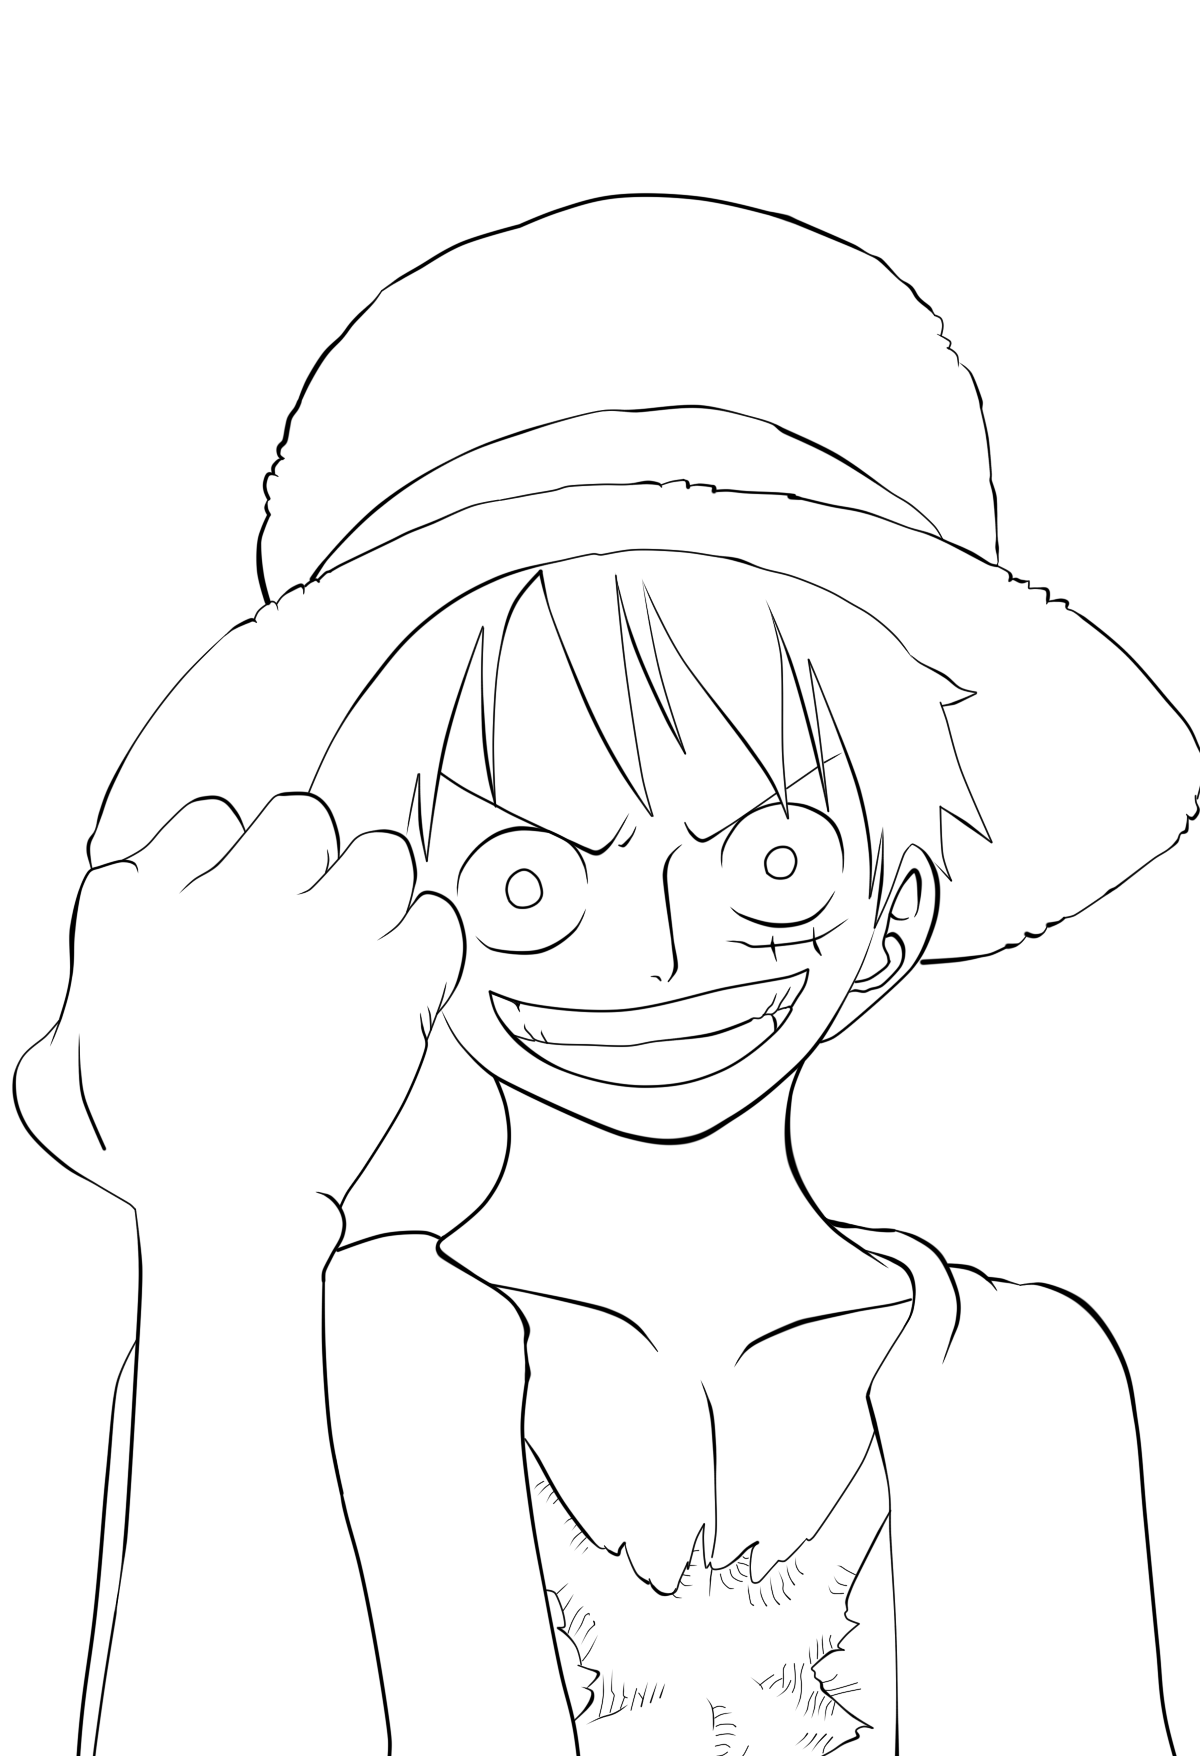 Luffy Lineart : Onepiece cover luffy lineart by dreamdsiner on deviantart